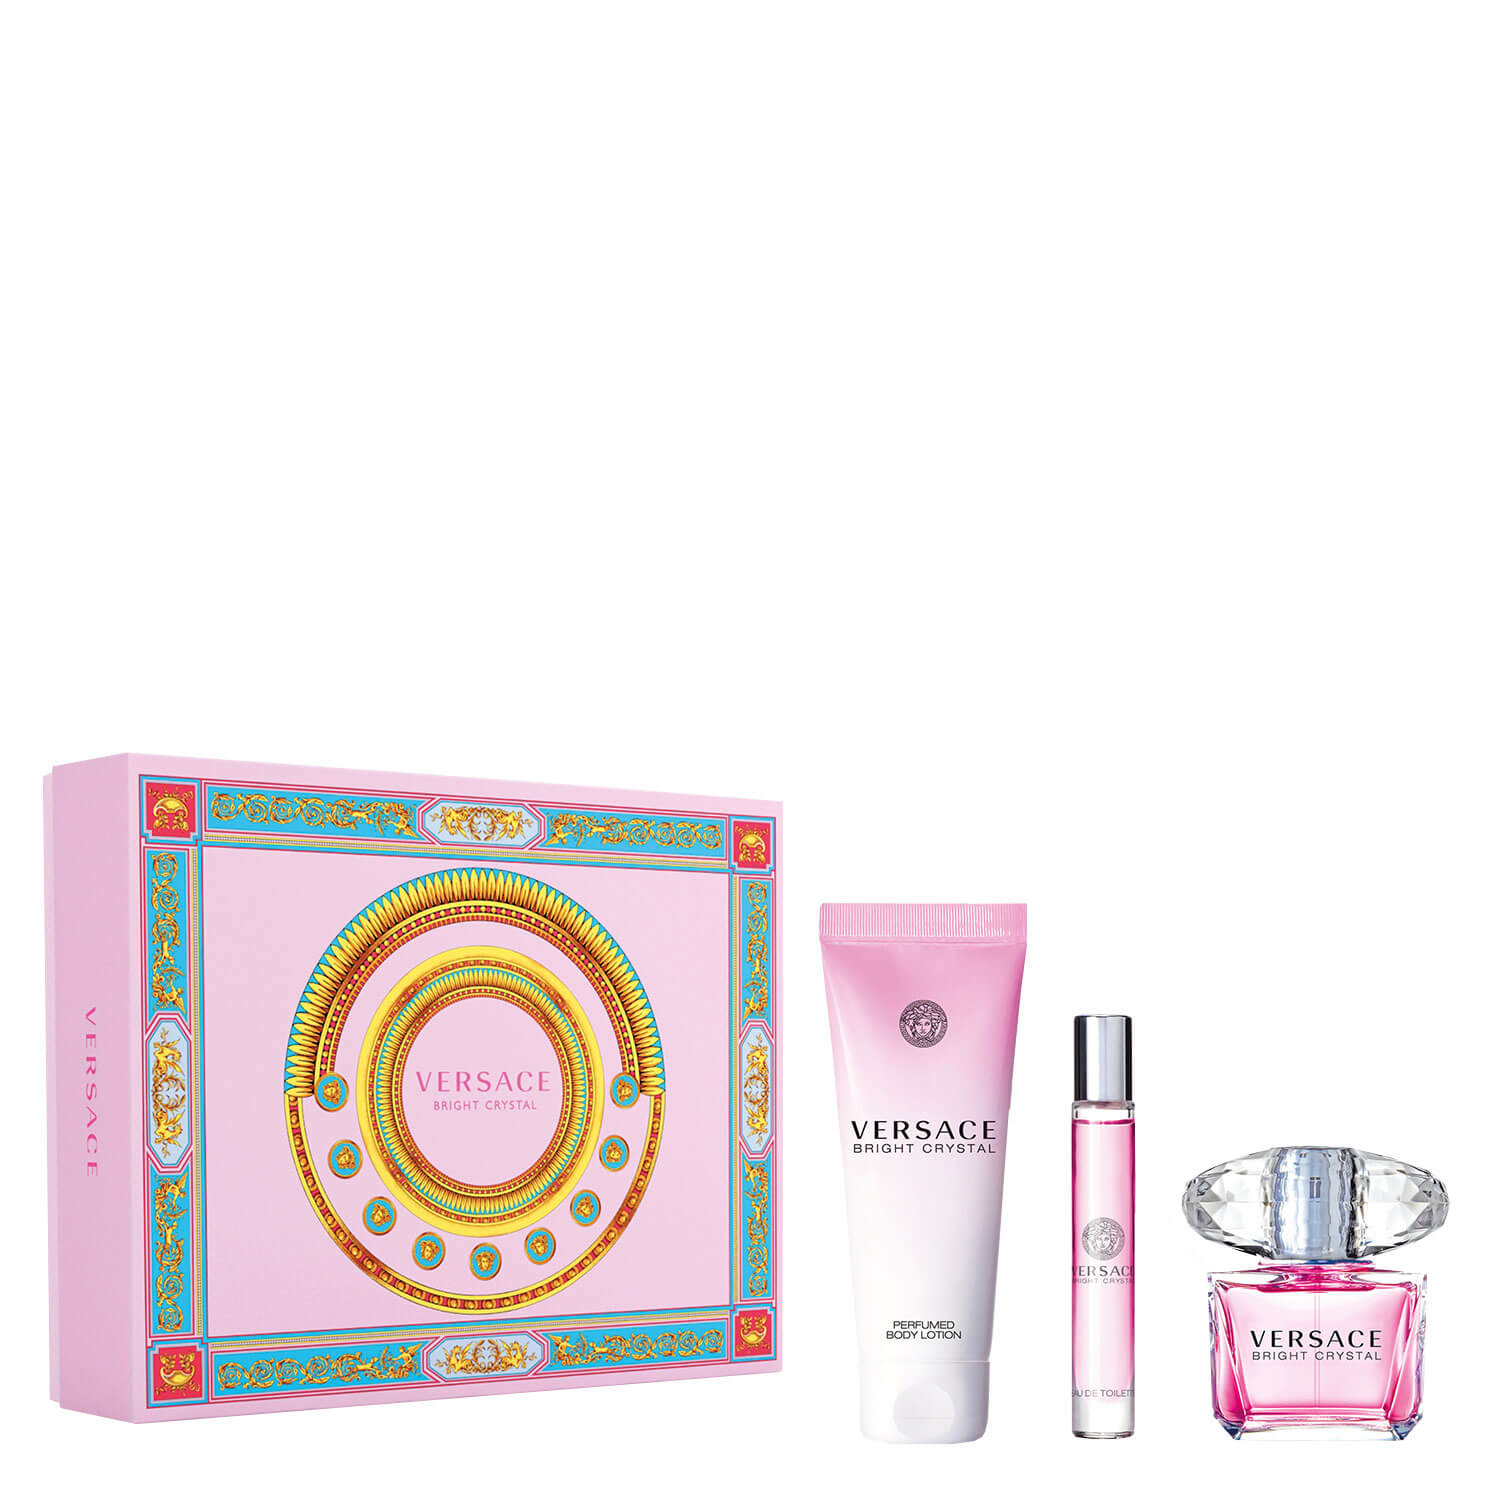 Bright Crystal - Eau de Toilette Kit